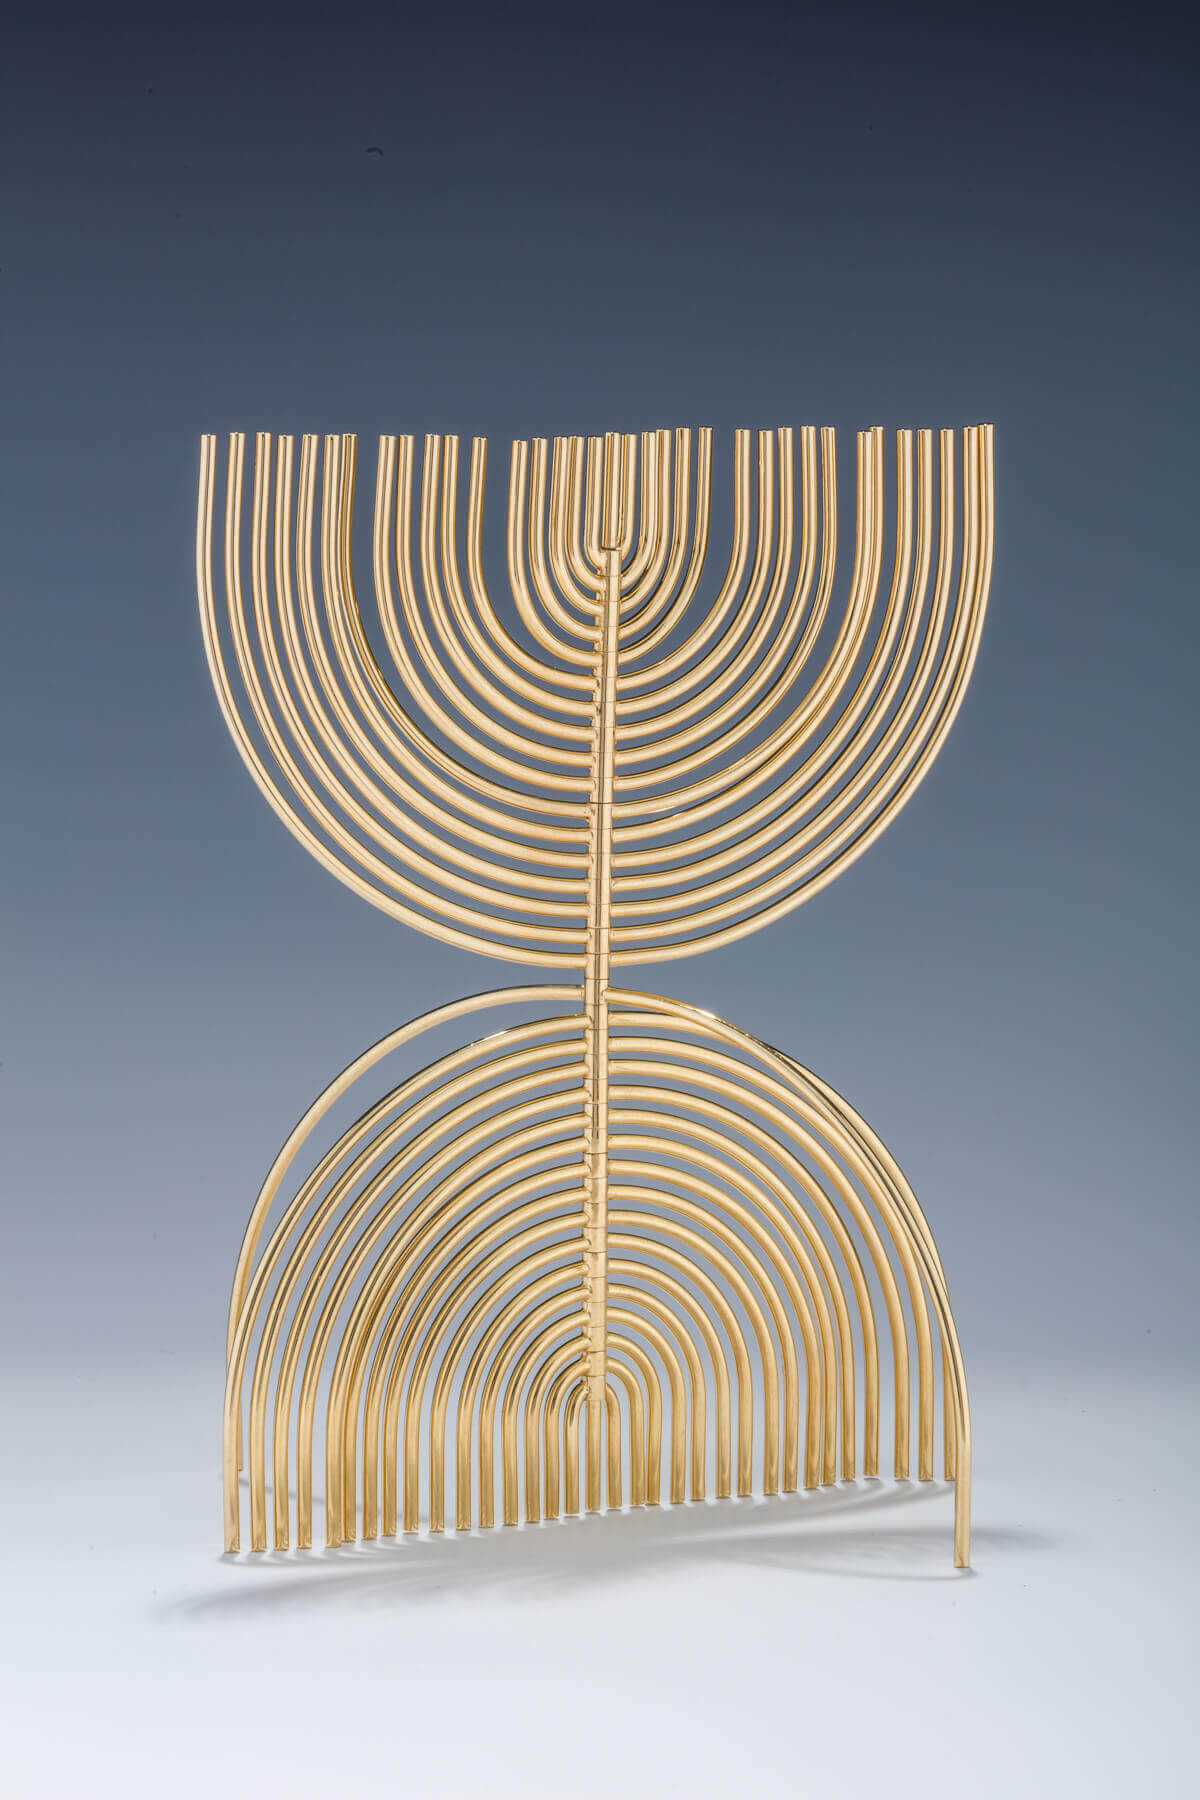 128. THE AGAM MENORAH